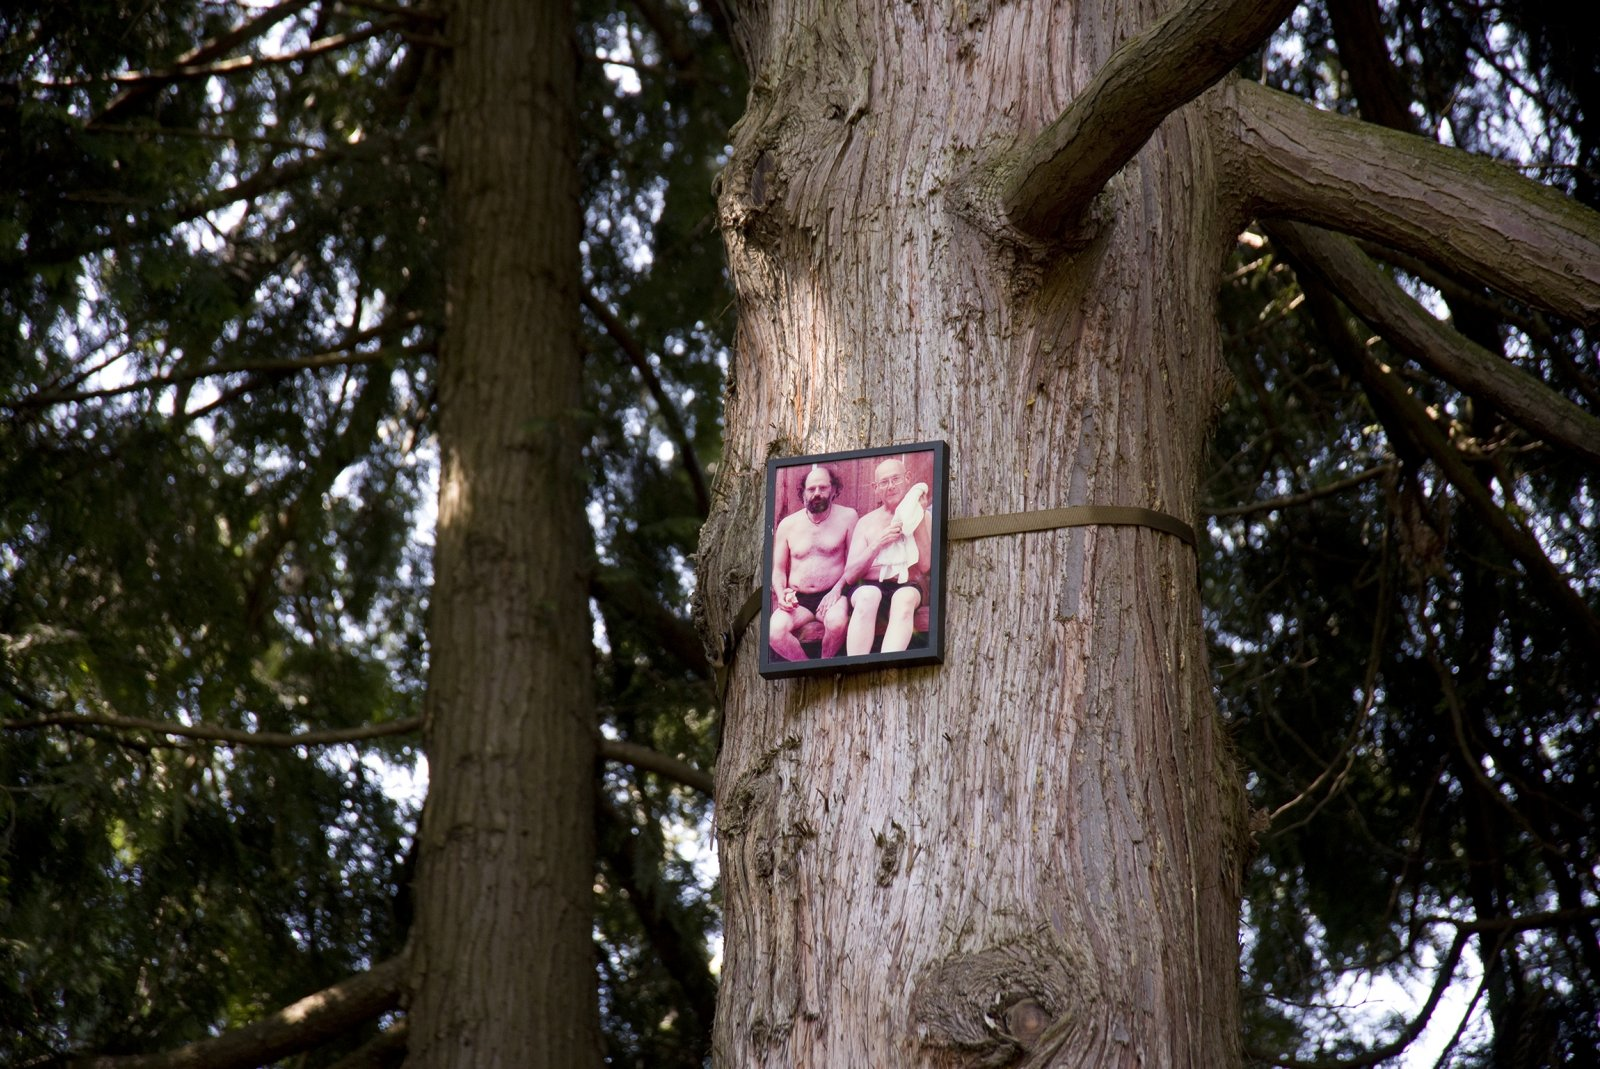 Geoffrey Farmer, If You Want To See Something Look at Something Else (Allen Ginsberg 1926–1997), 2011, 50 colour photographs mounted on perspex, framed, dimensions variable. Installation view, Volunteer Park, Seattle, USA, 2019